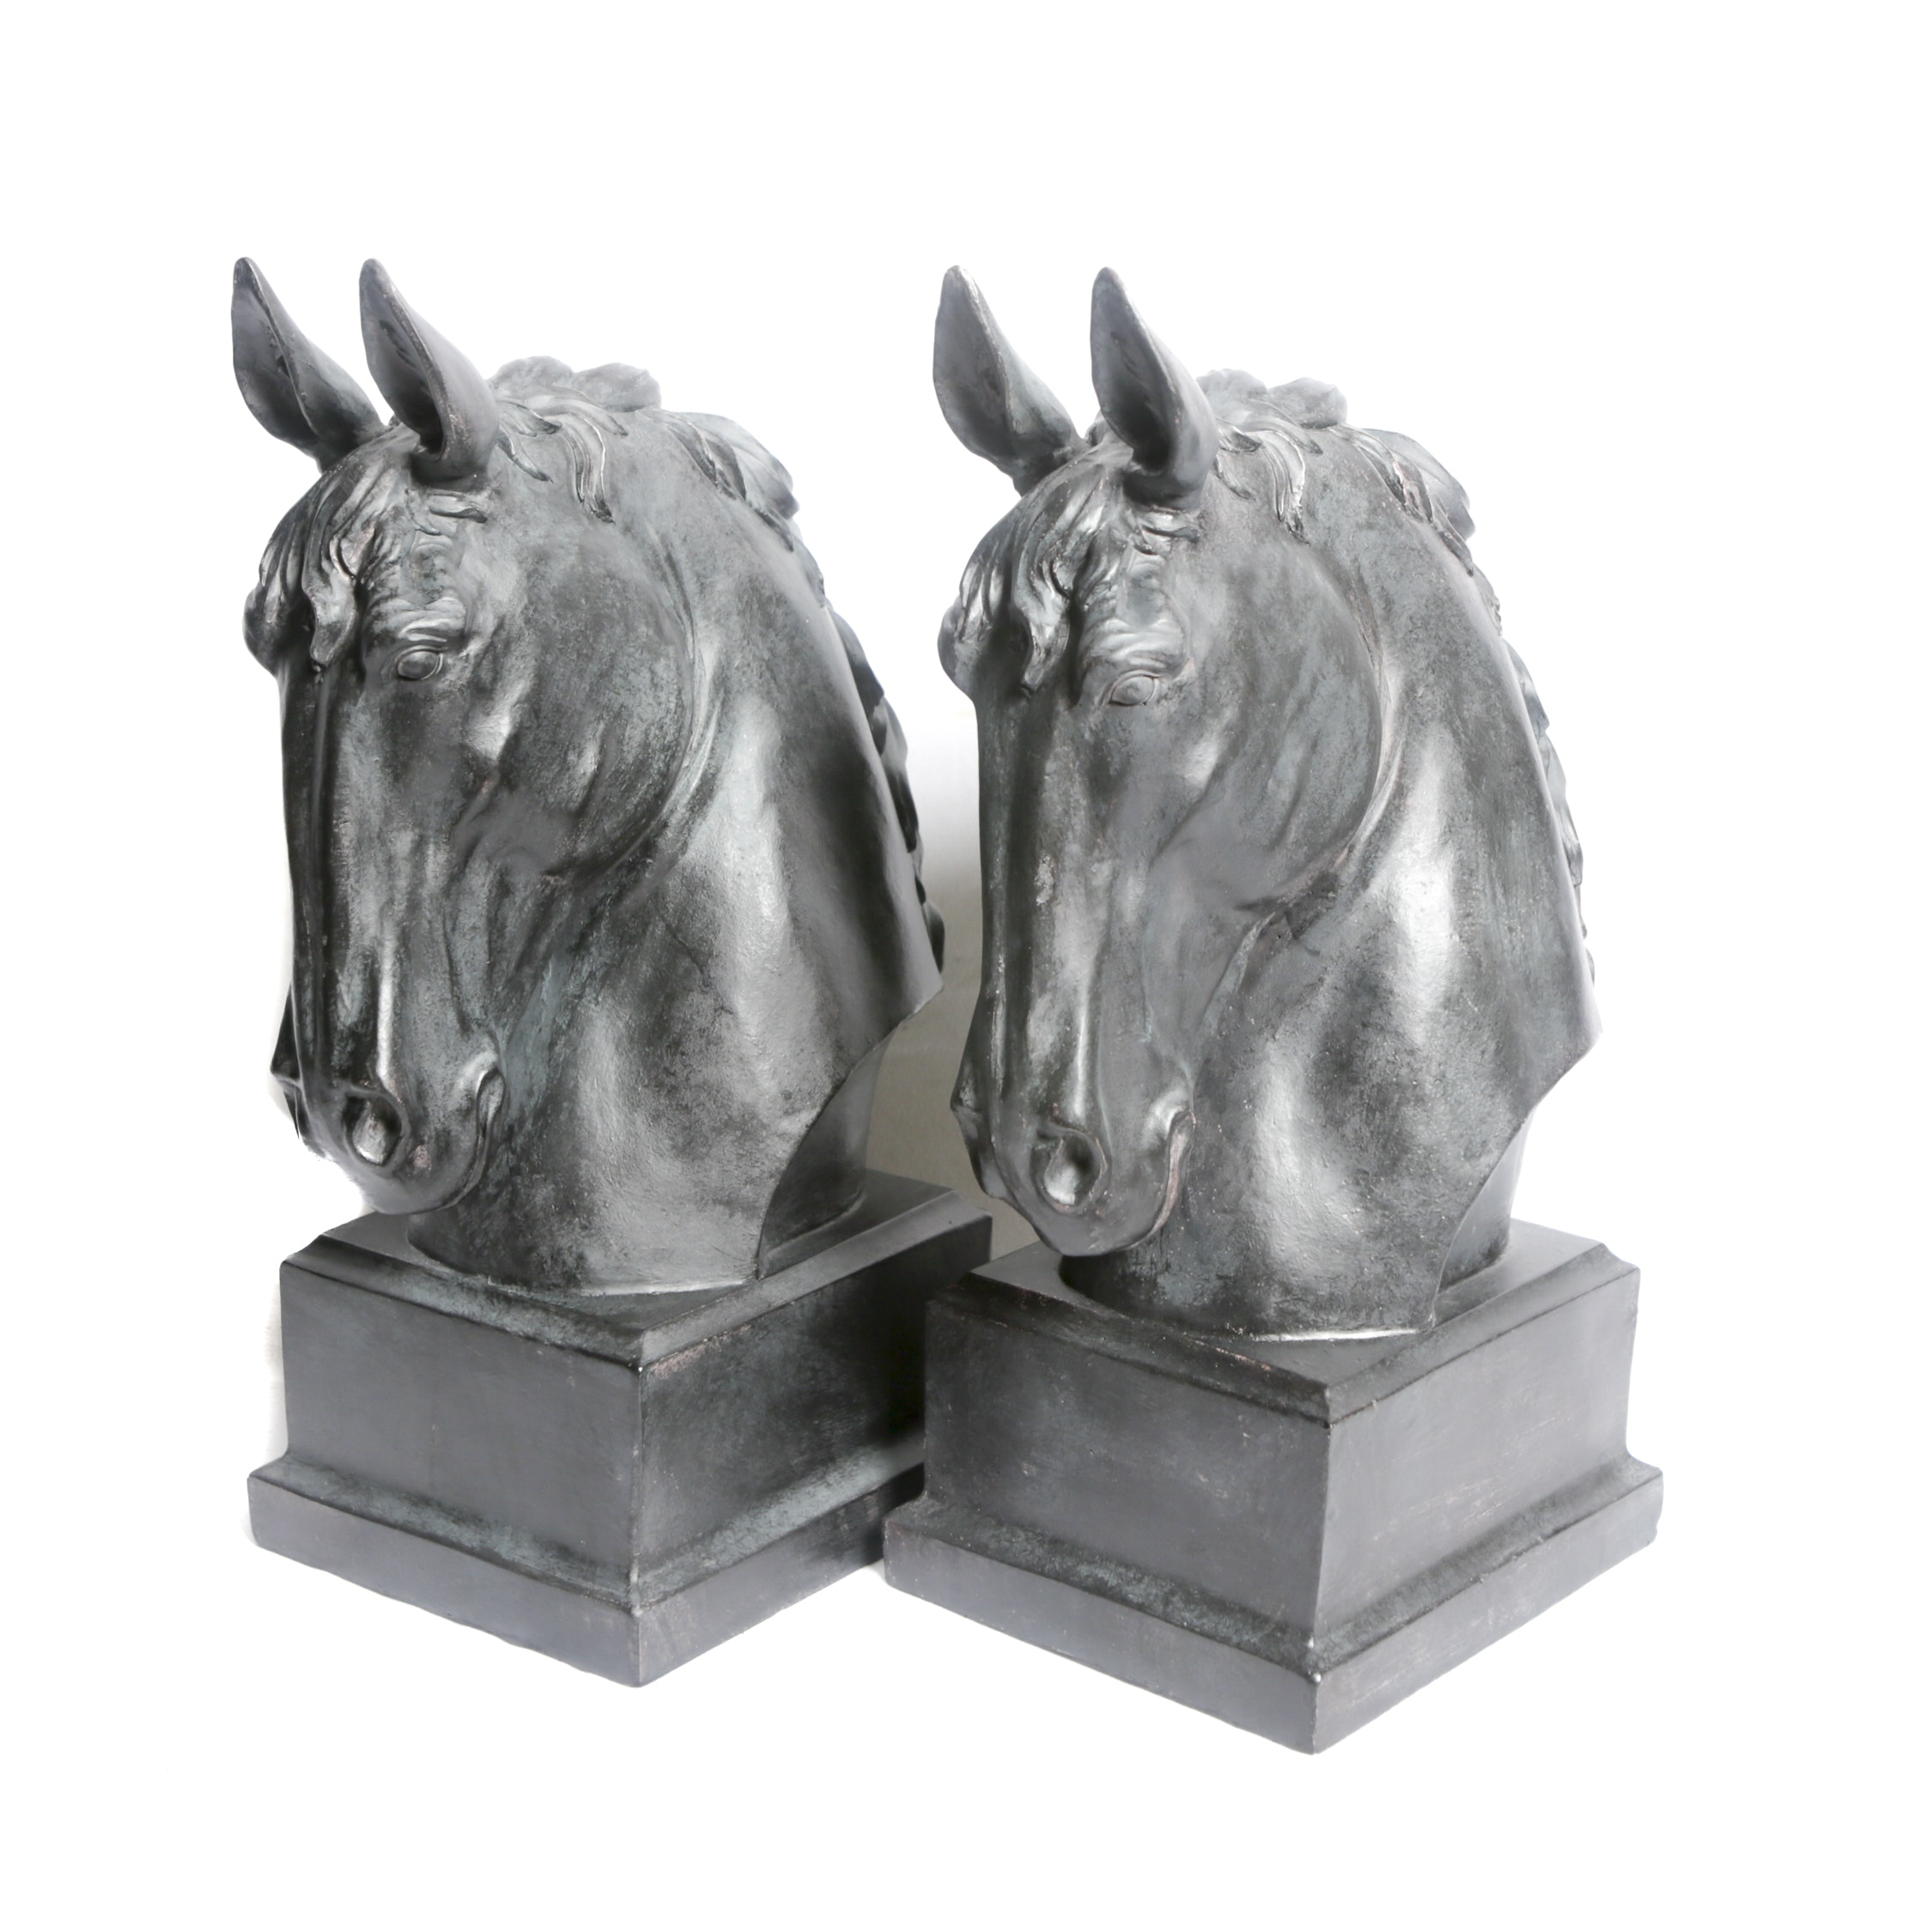 Matched Black Finish Resin Horse Head Statuettes with Verdigris Wash